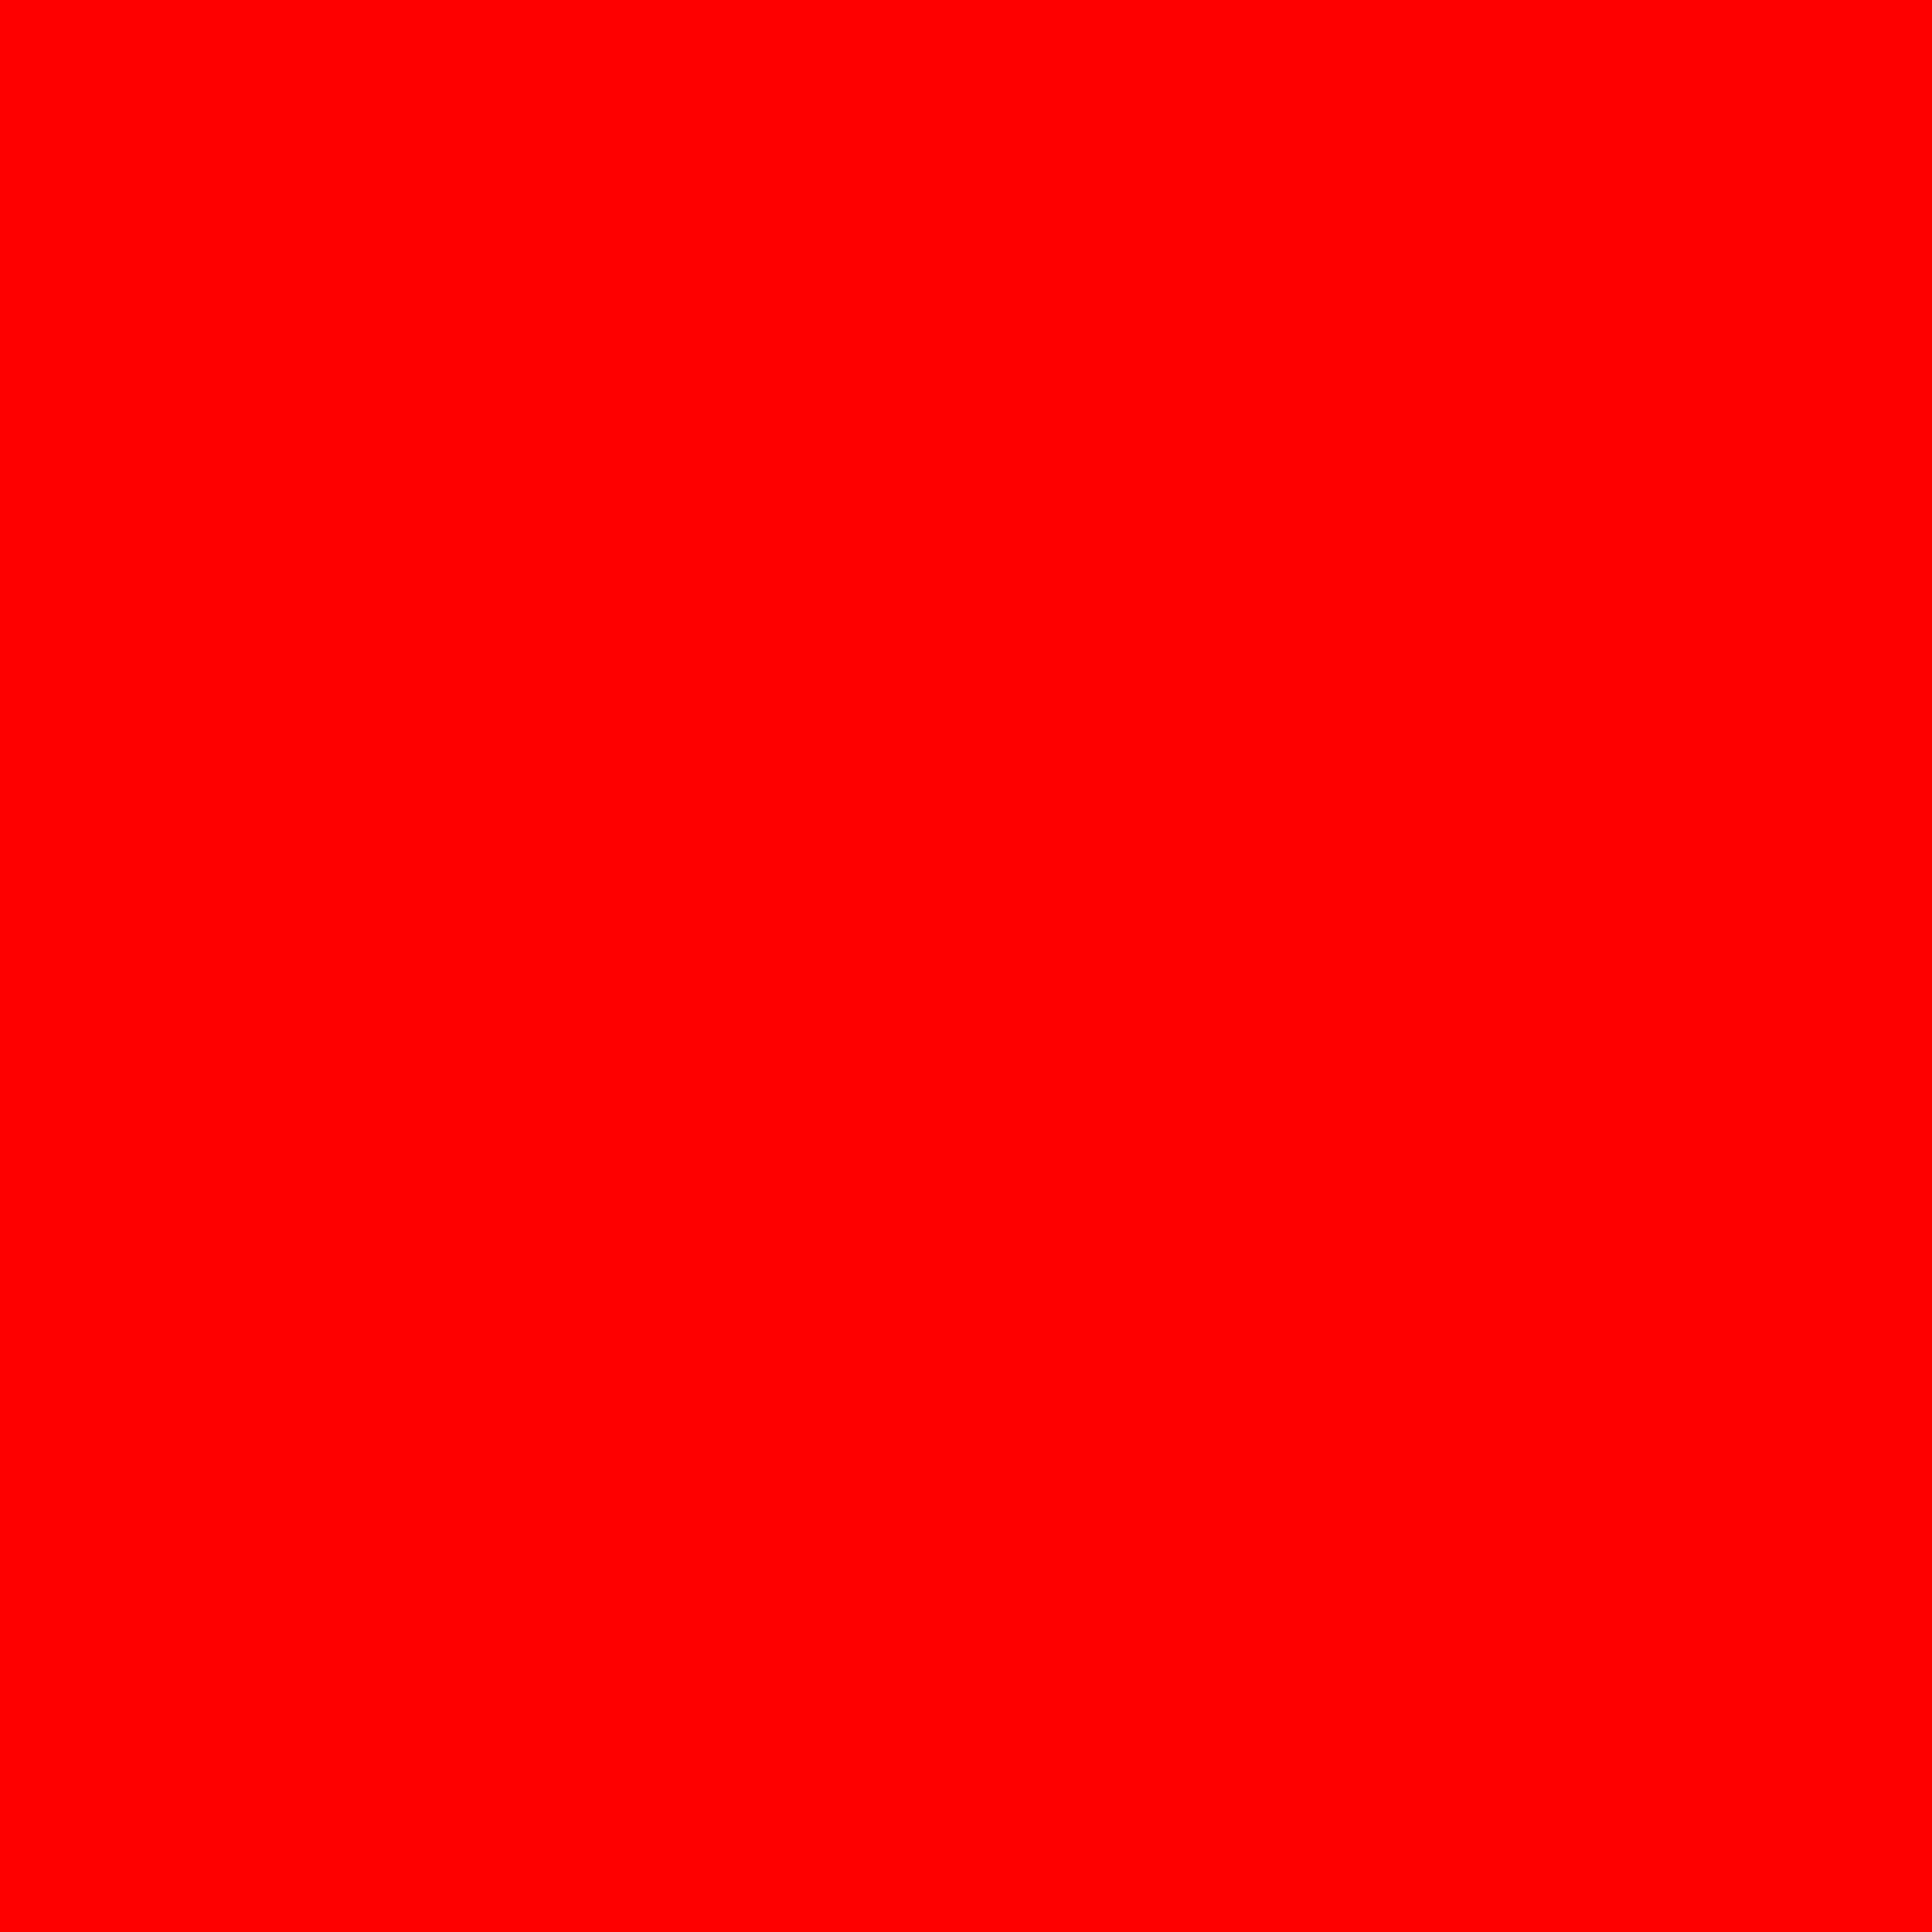 3600x3600 Red Solid Color Background